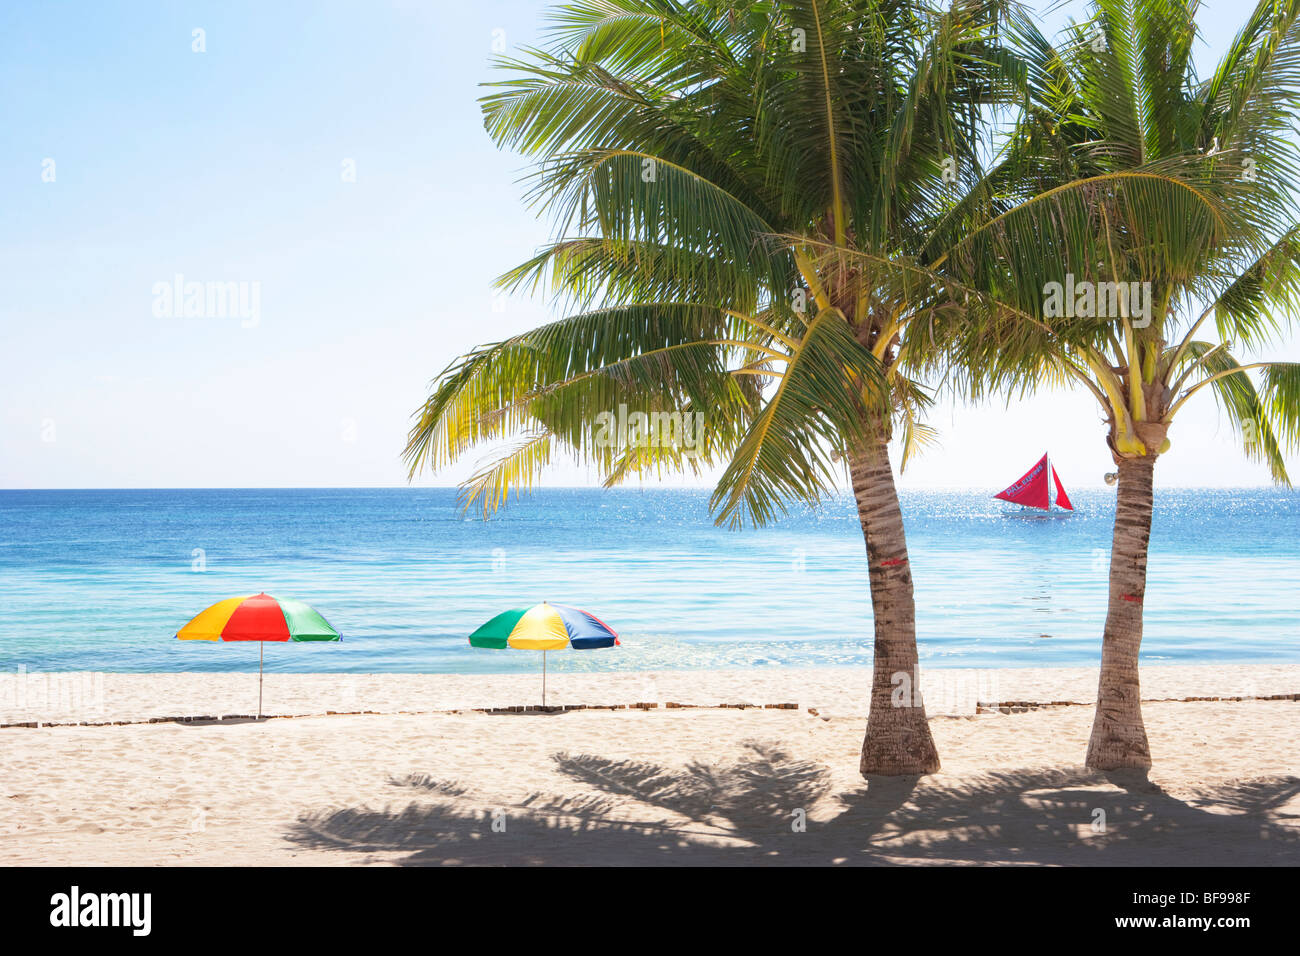 Beach, palms, umbrellas, sea, sand and sail boat in Boracay; The Visayas; Philippines. - Stock Image